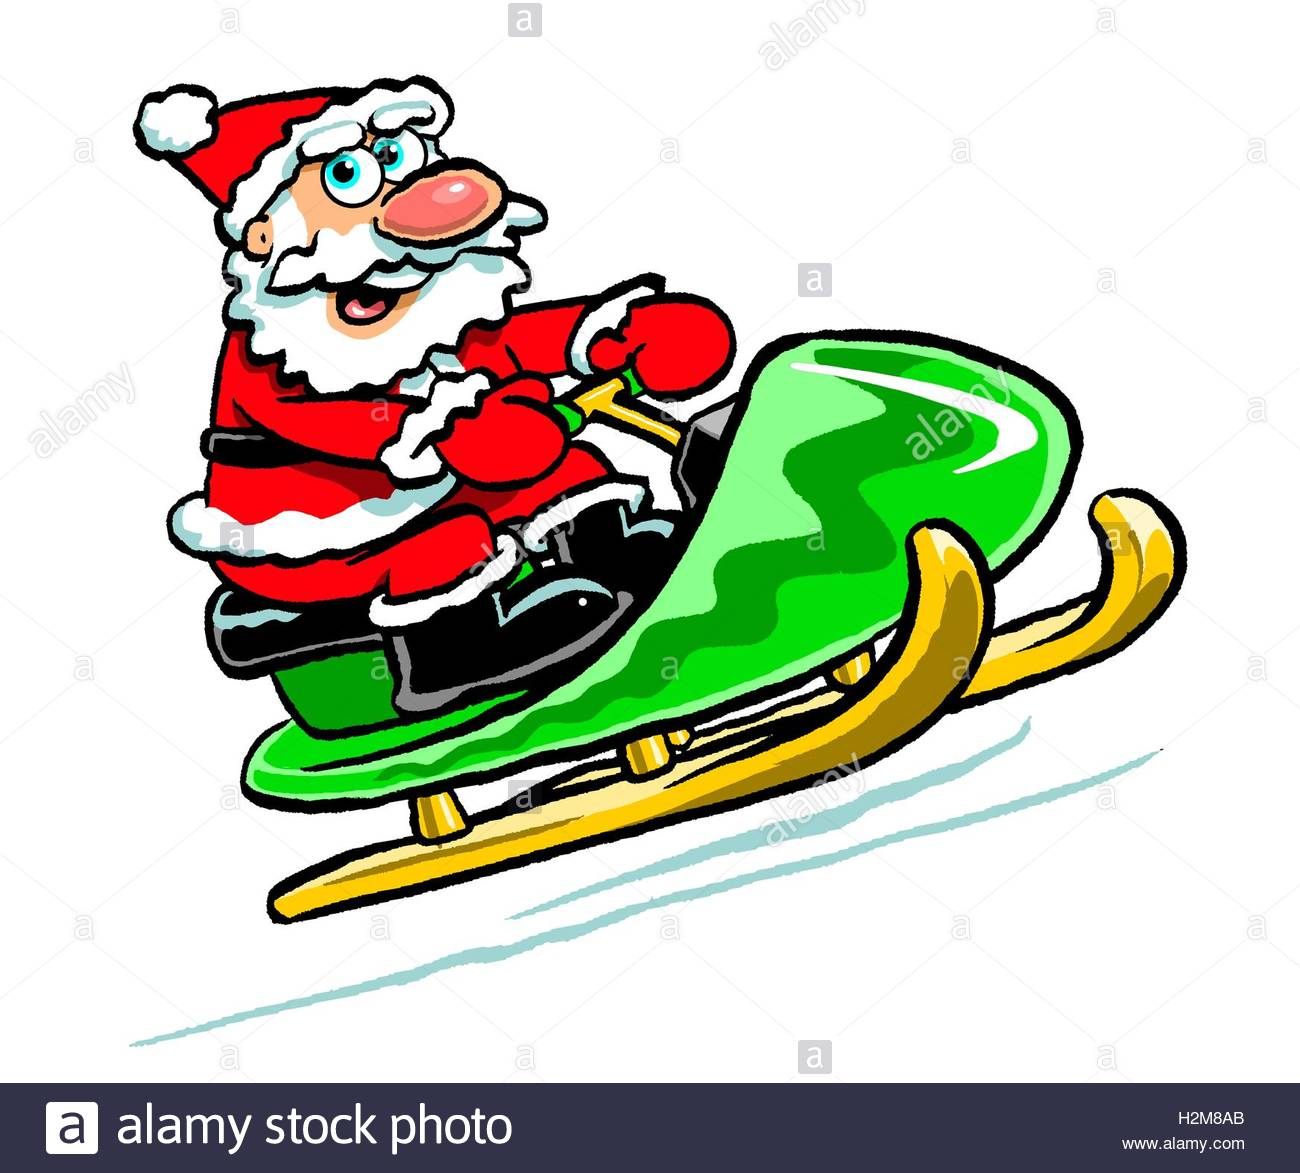 1300x1173 Cartoon Caricature Of Santa Clause In Red Suit Riding Snowmobile